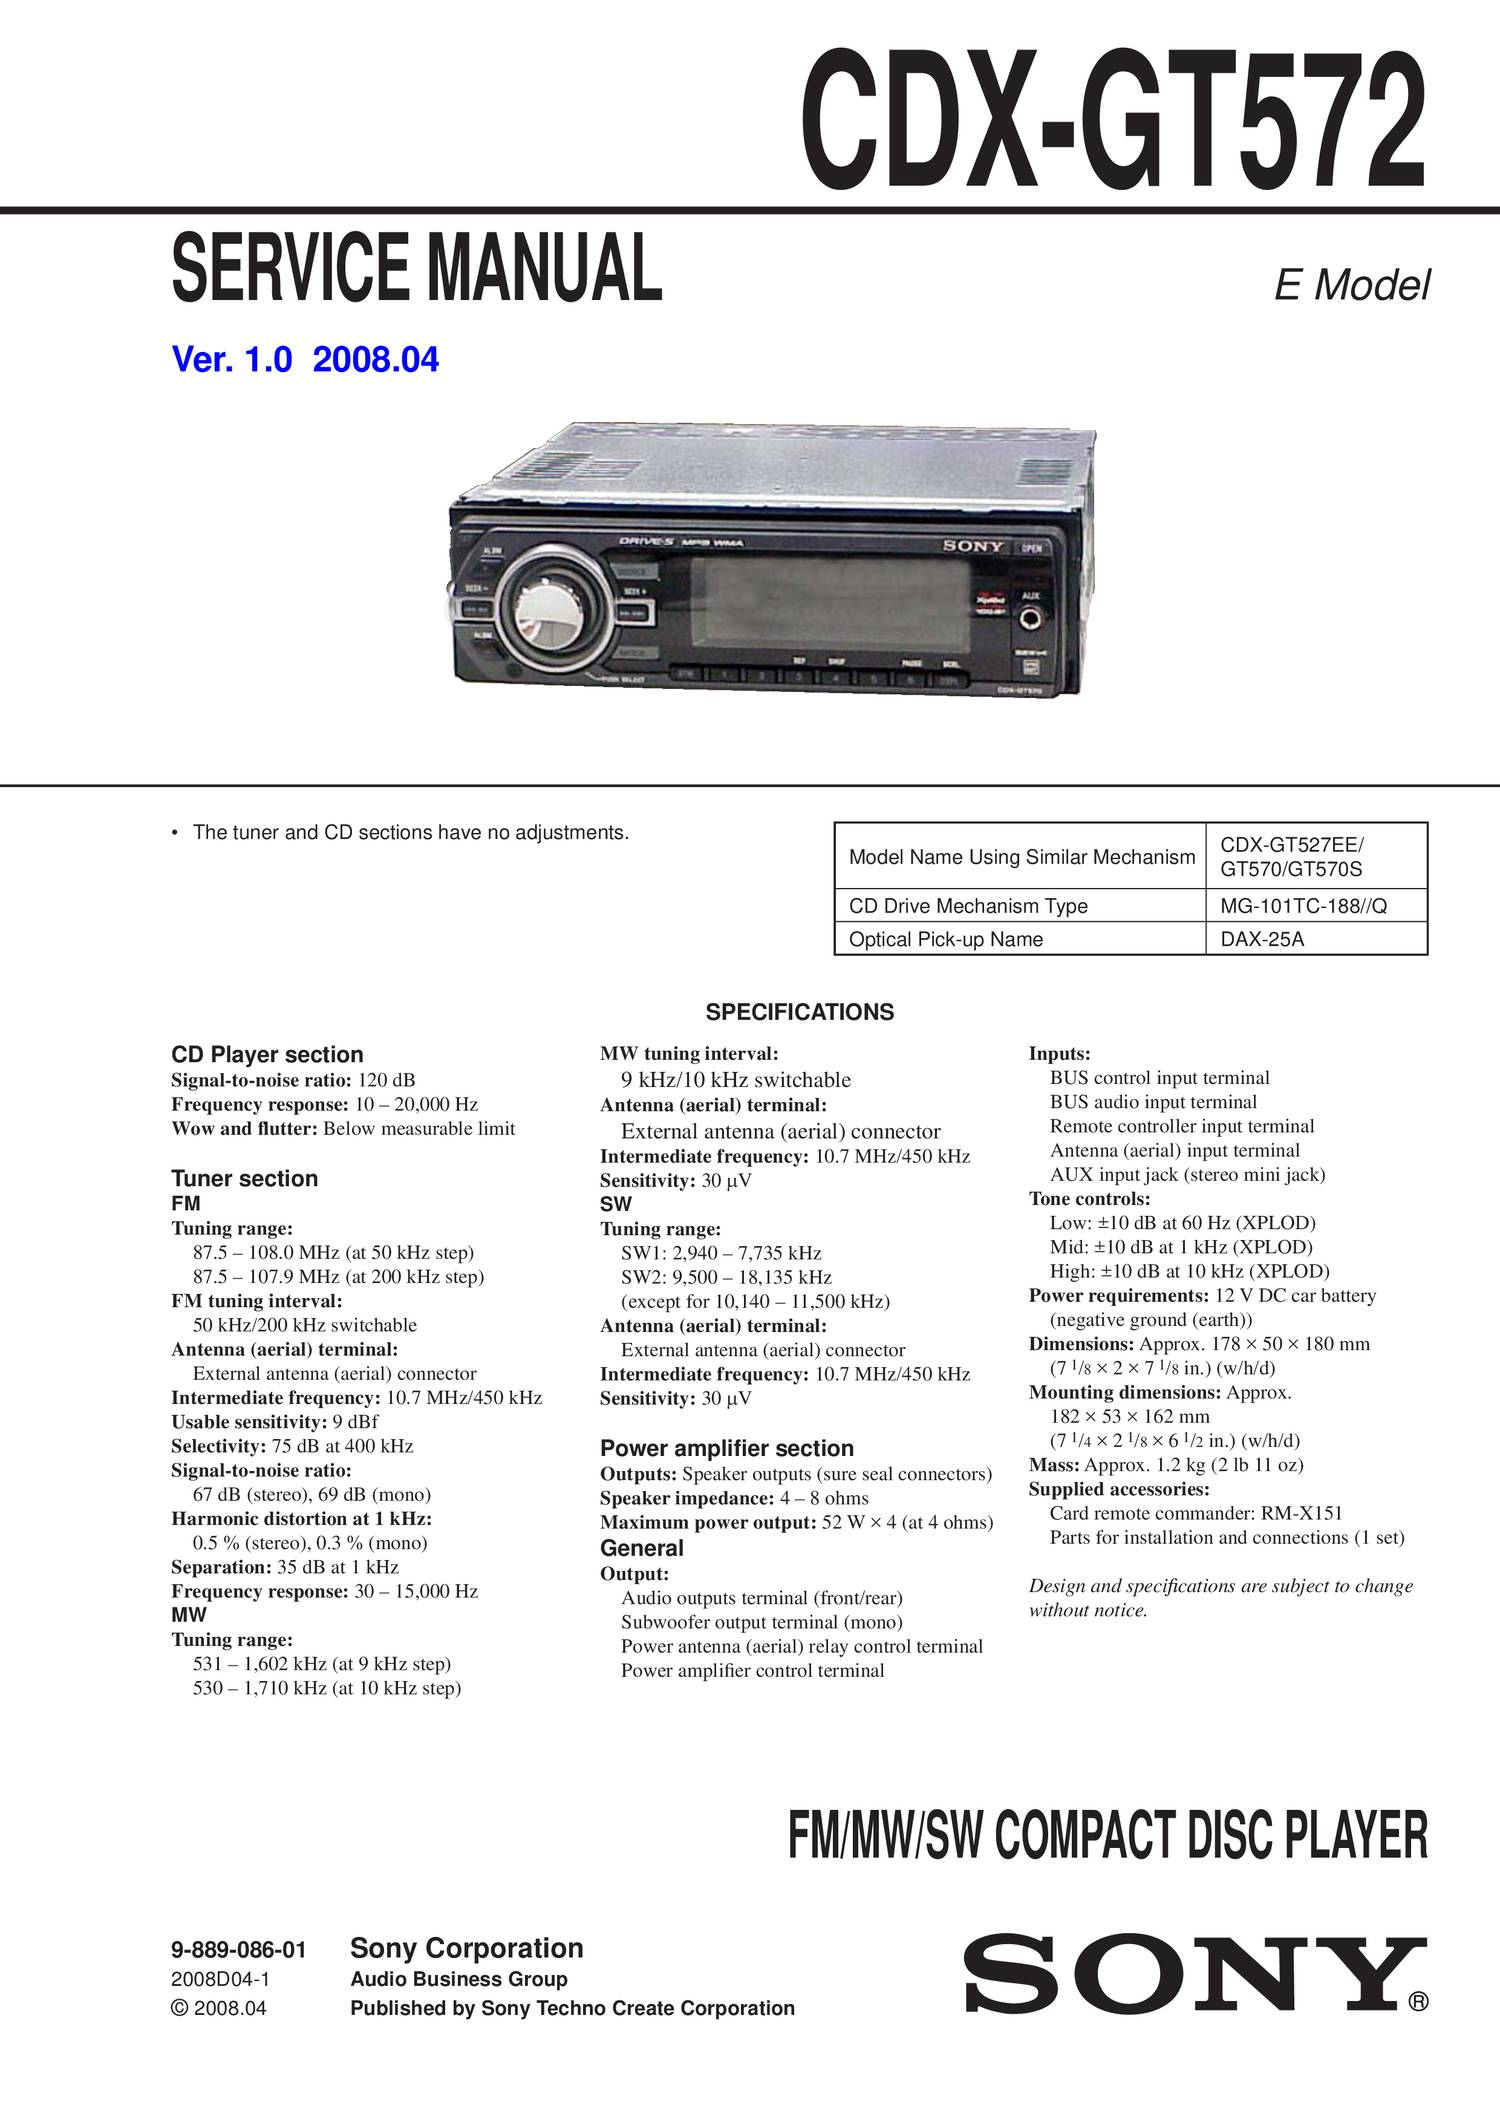 Sony Cdx Gt510 Wiring Diagram together with Sony Fm Am  pact Disc Player Cdx Gt210 Wiring Diagram also Sony Xplod Lifier Wiring Diagram likewise Sony Cd Player Cdx Gt310 Wiring Diagram together with Sony Cdx Gt310 Wiring Diagram. on sony xplod cdx gt25m wiring